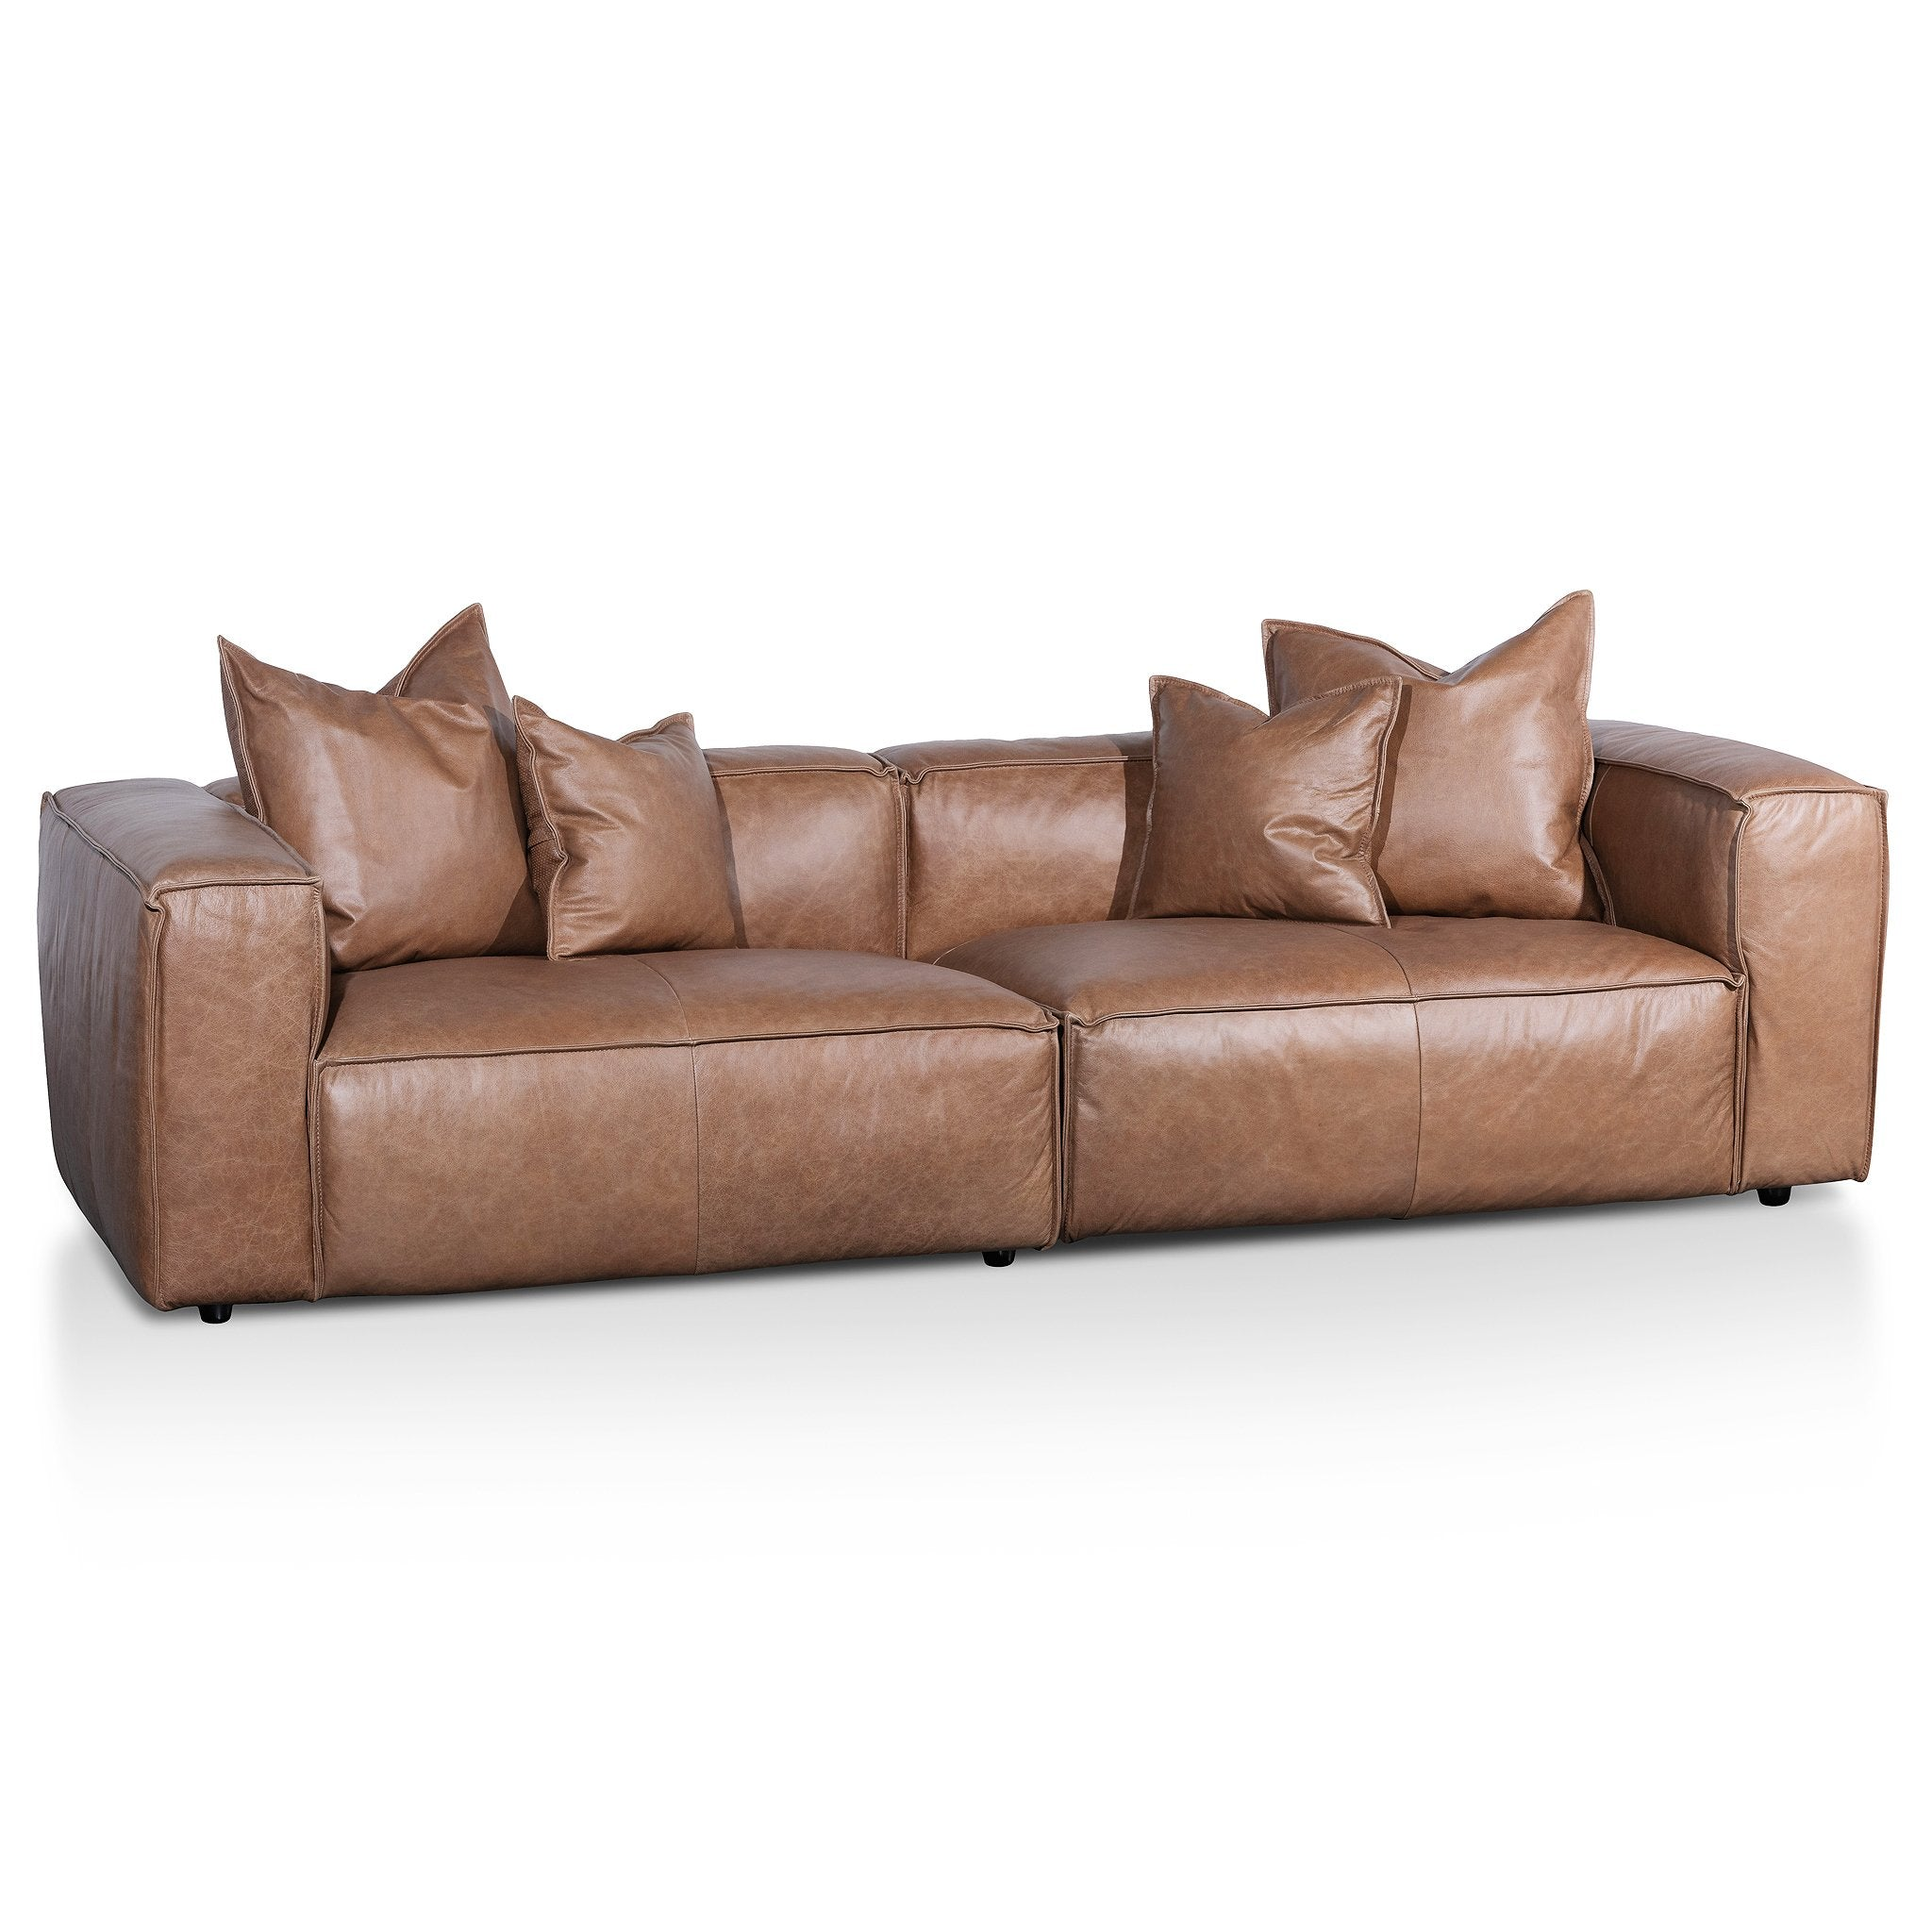 Loft 3 Seater Sofa With Cushion And Pillow Saddle B Interior Secrets